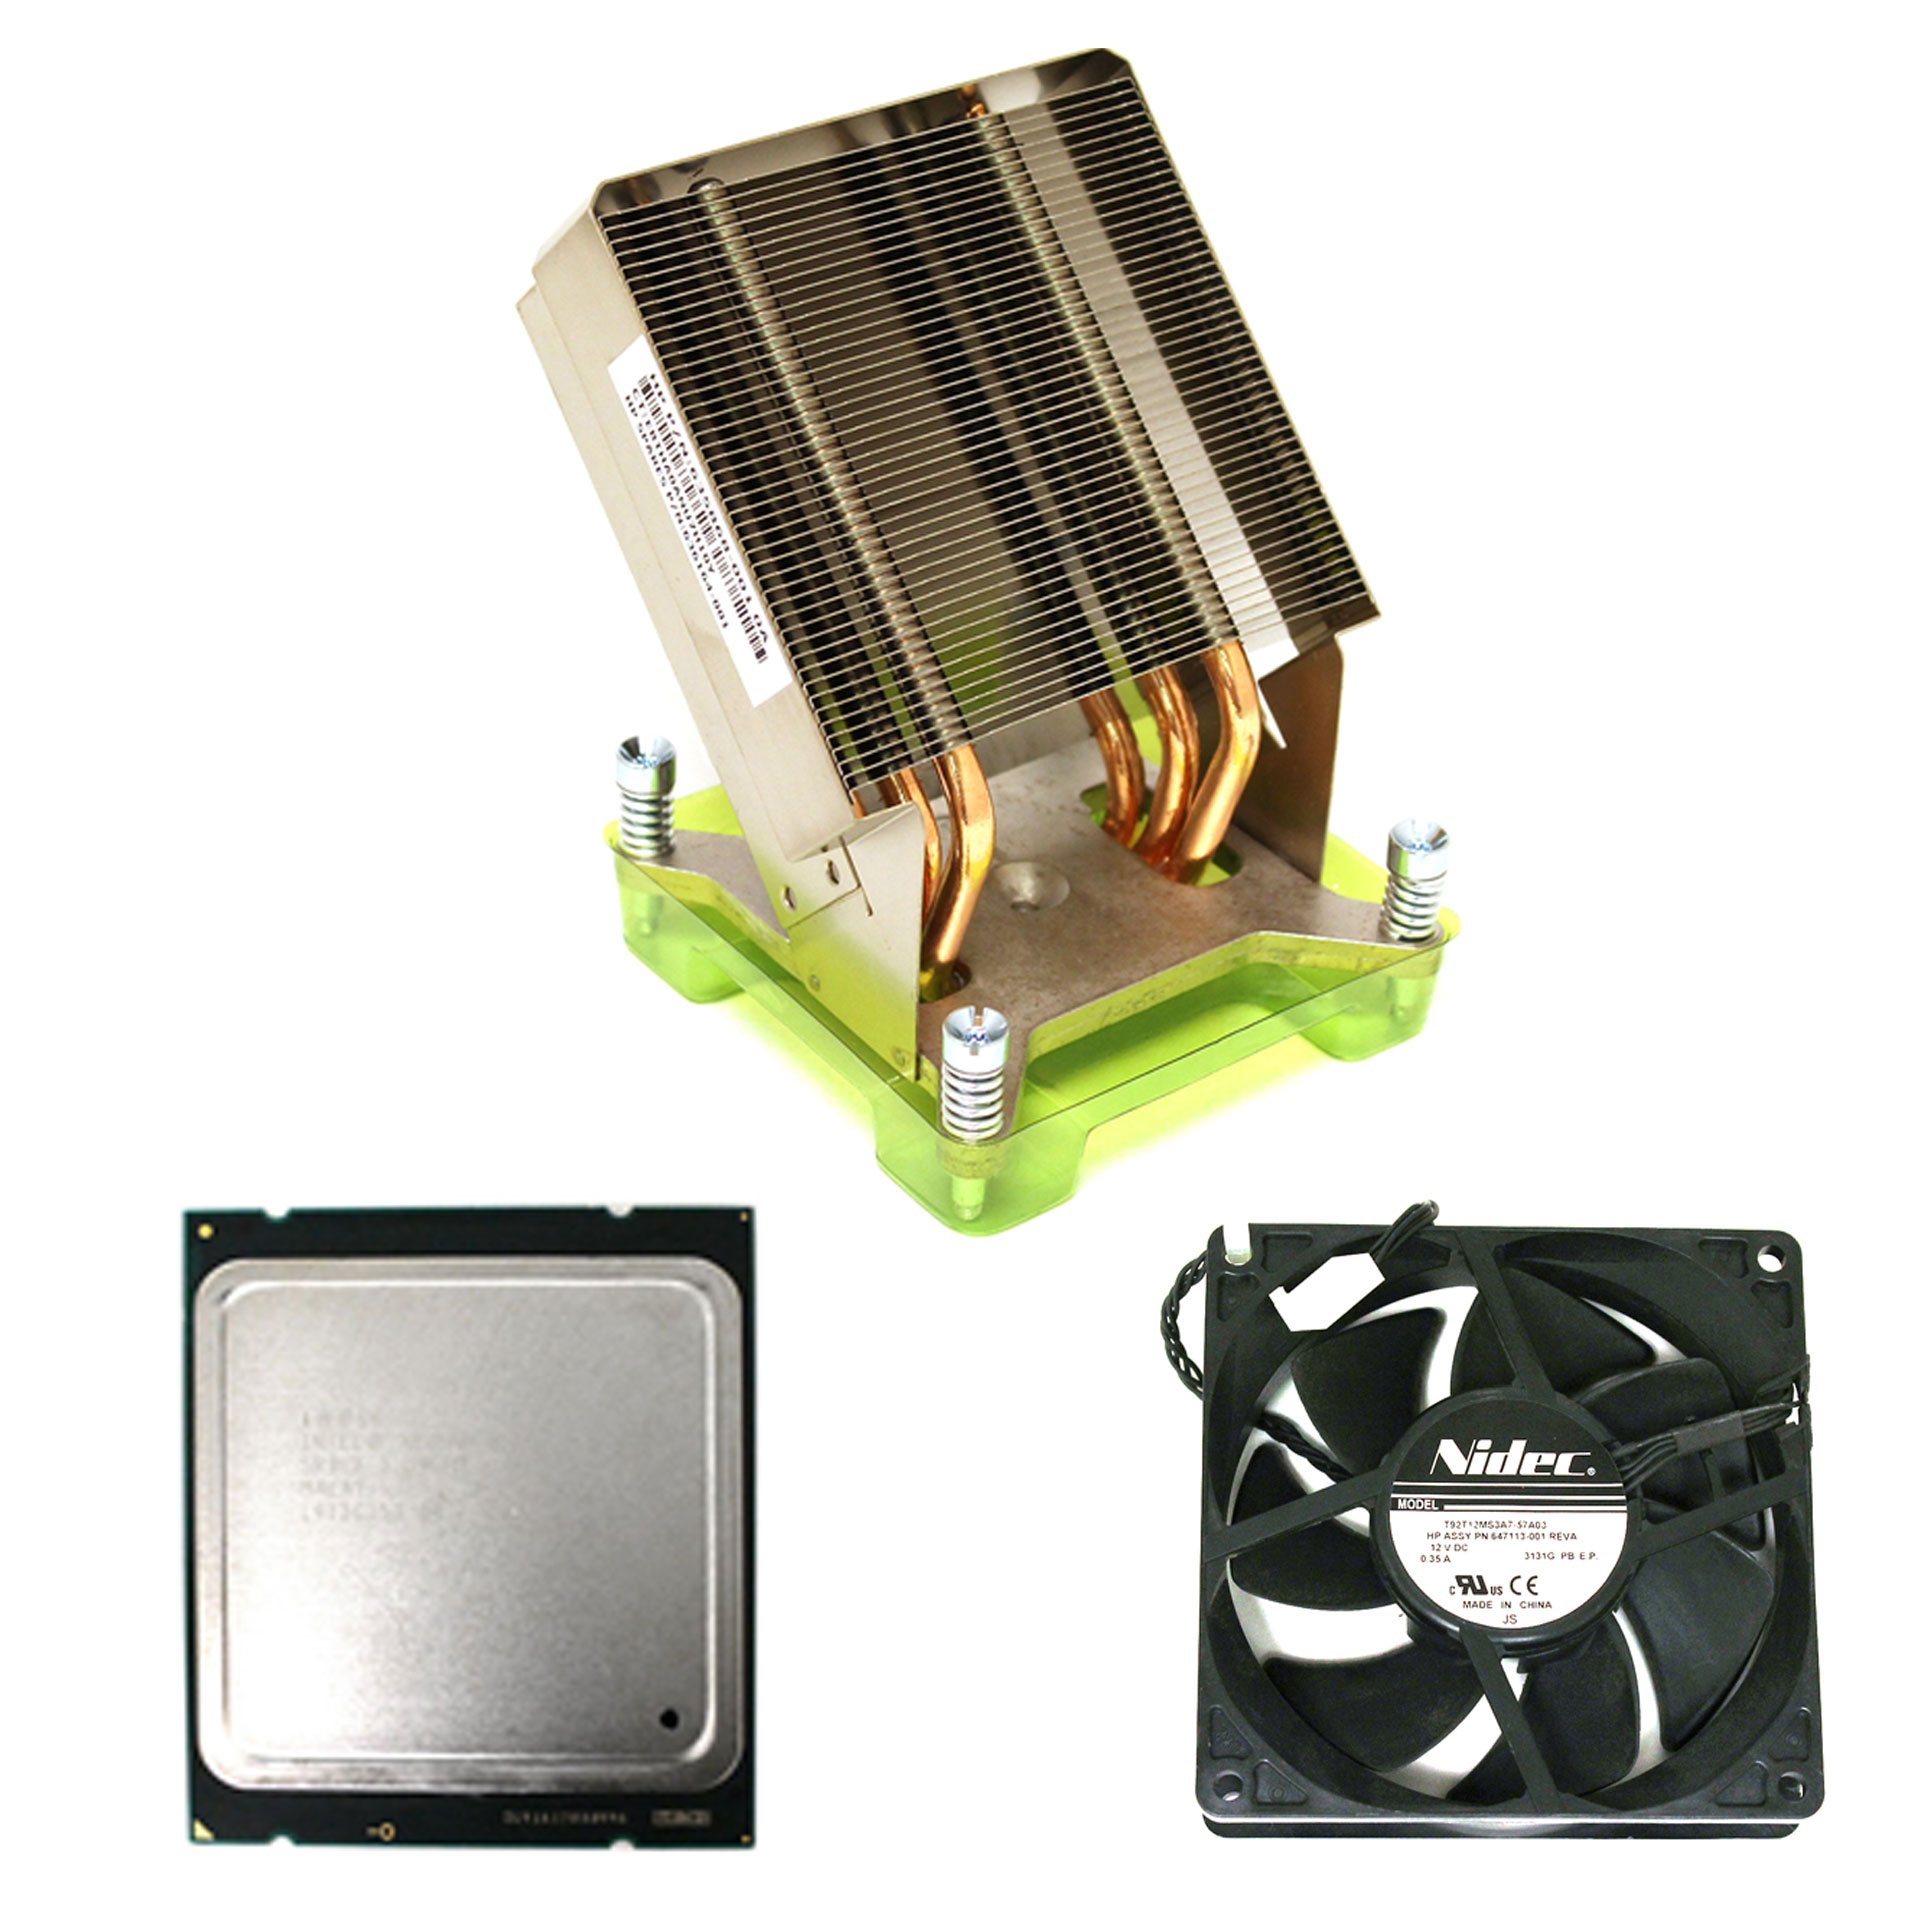 Processor KIT HP Z820 Workstation Xeon E5-2620 V2 Heatsink Fan